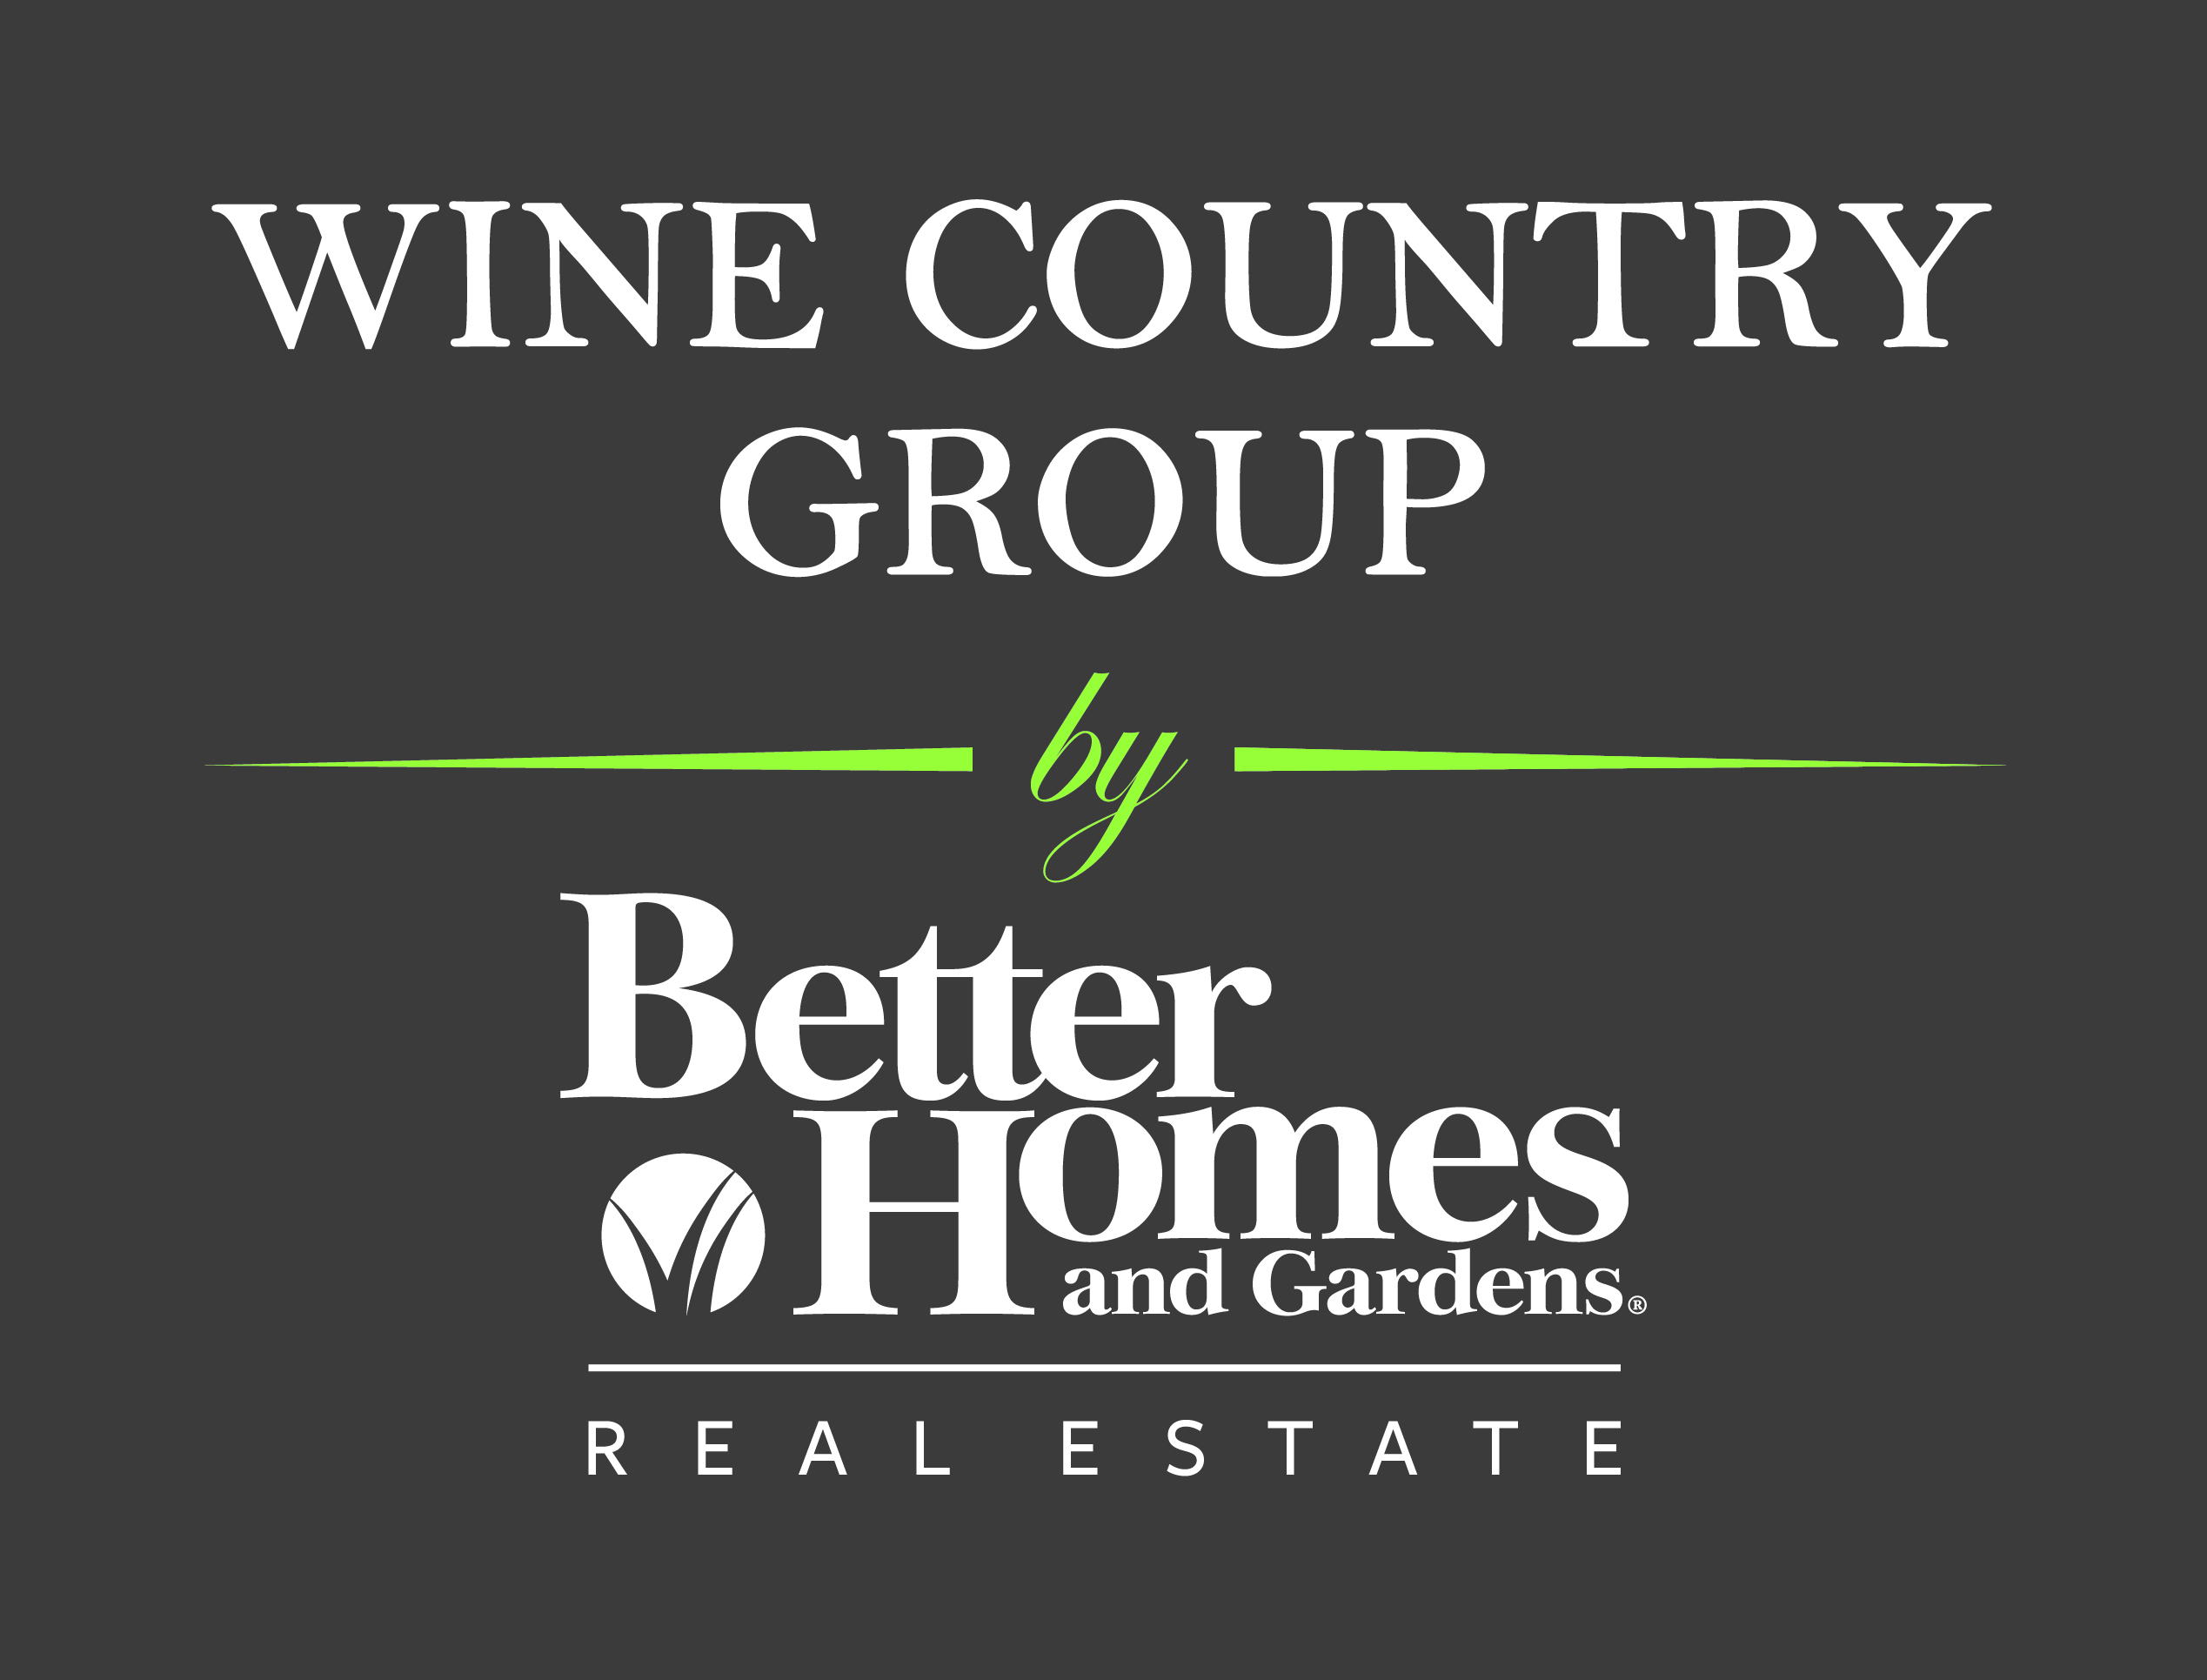 Wine country group porno woman site Better homes and gardens website